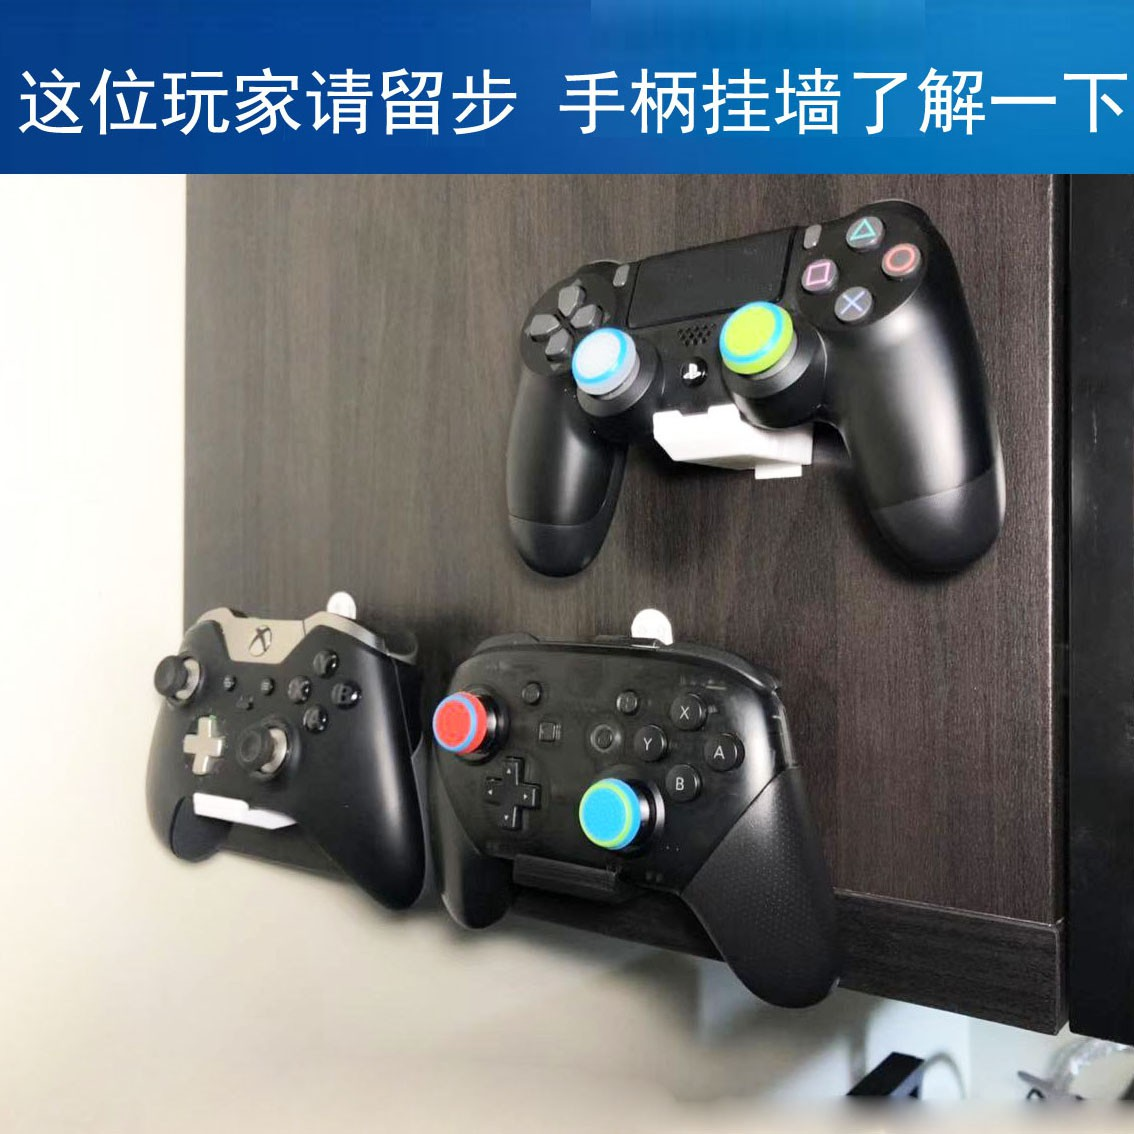 、原創PS4PRO SLIM XBOX ONE SWITCH 手柄支架 配件 掛鉤掛墻掛壁掛